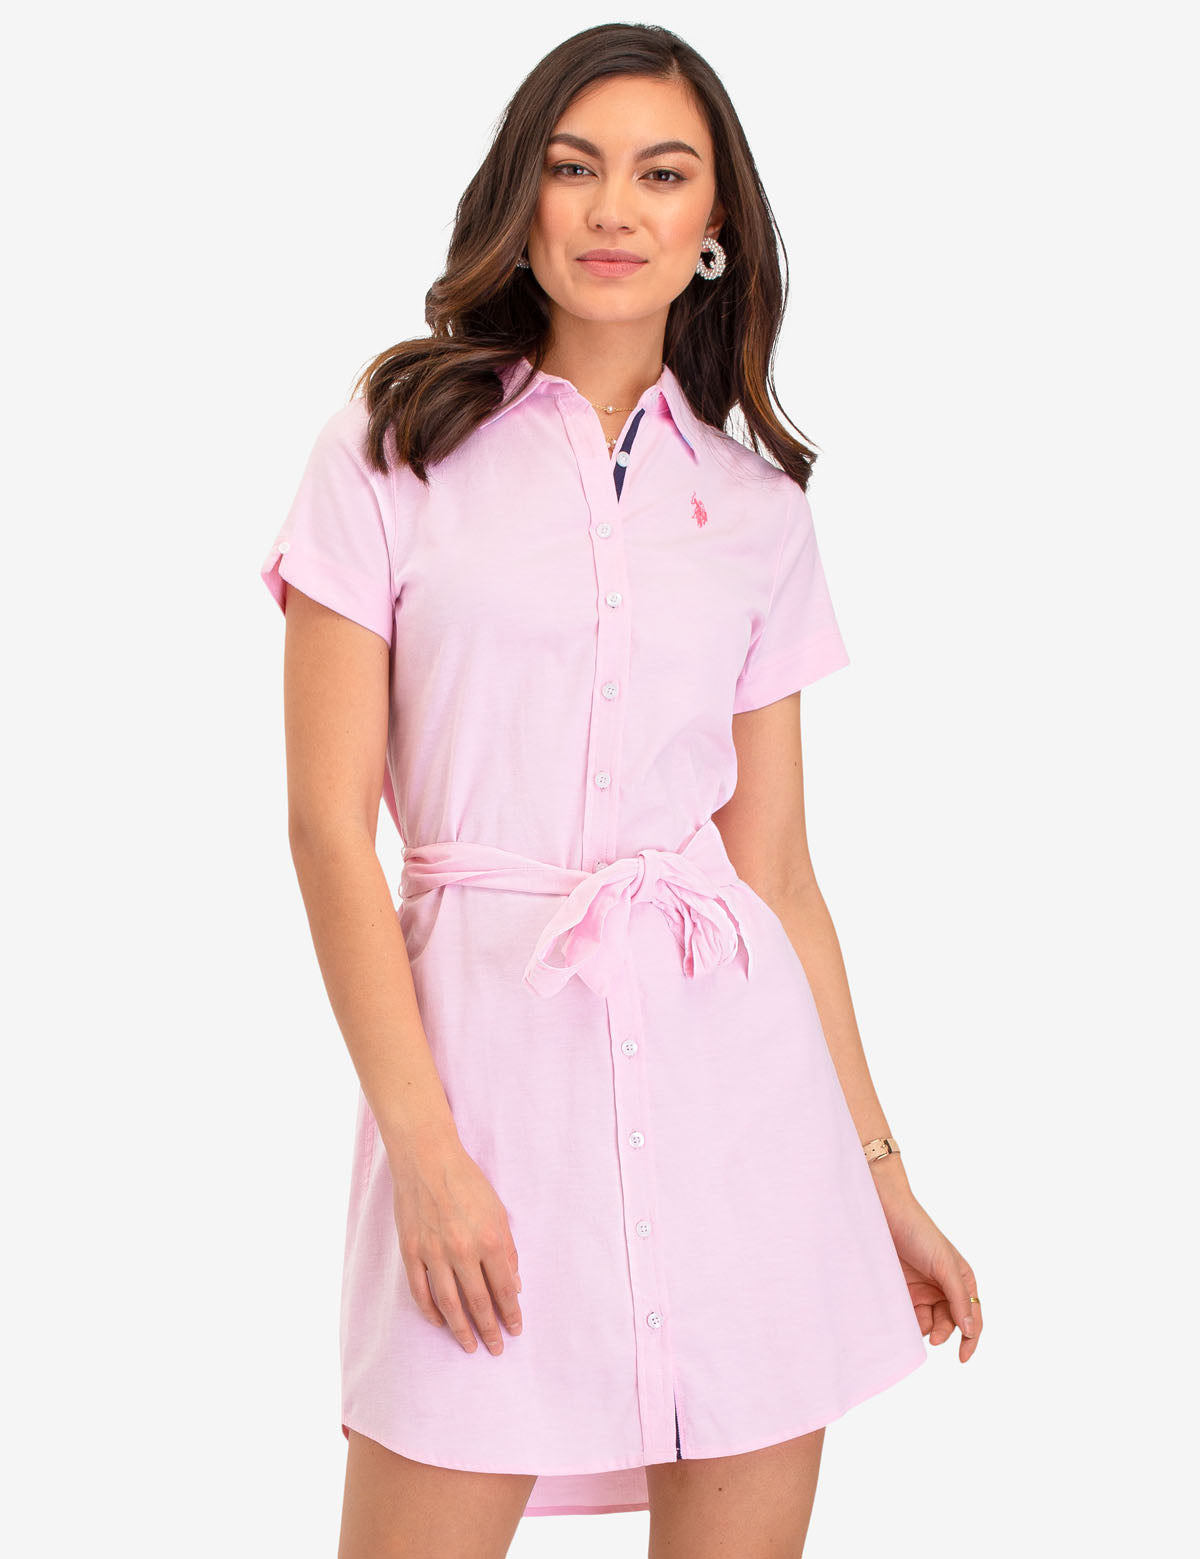 SHORT SLEEVE OXFORD DRESS - U.S. Polo Assn.